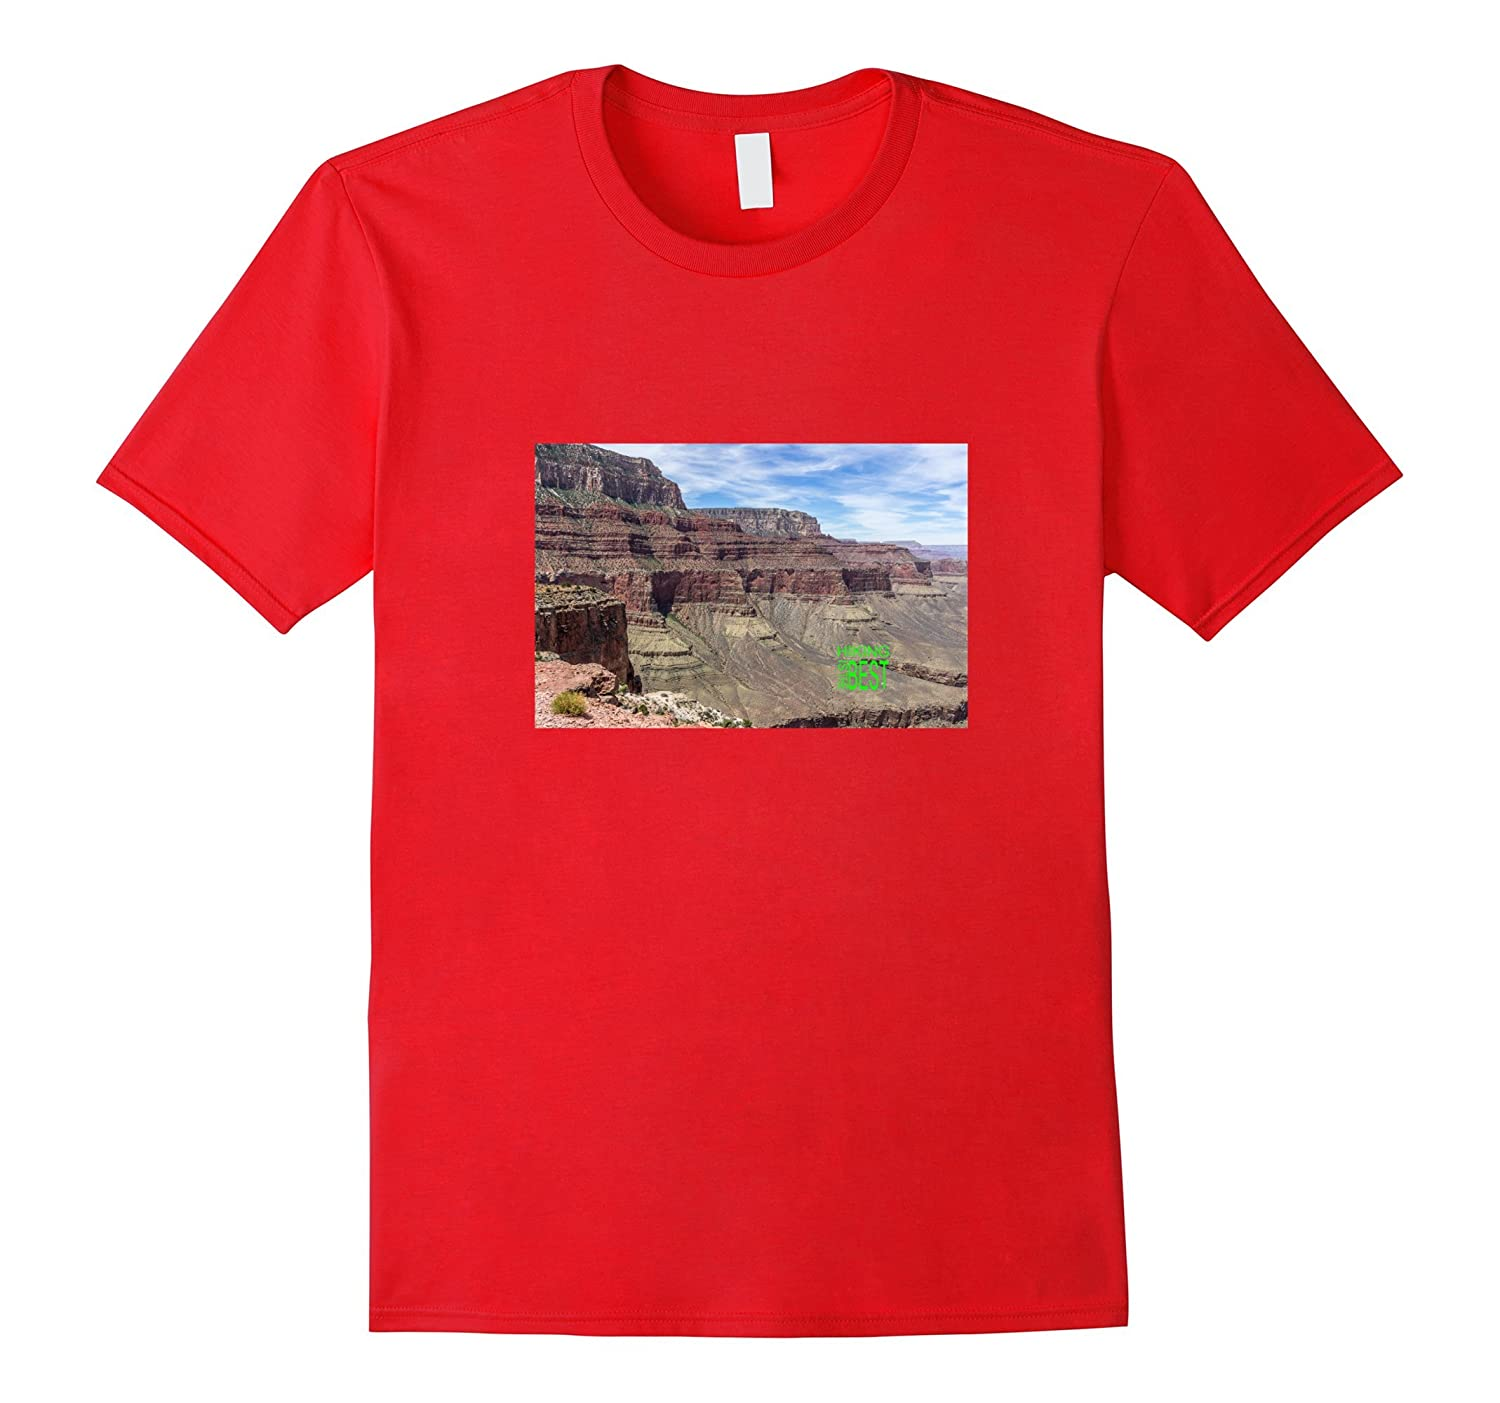 Hiking Is The Best - Photo of Grand Canyon Cliffs tshirt-Vaci